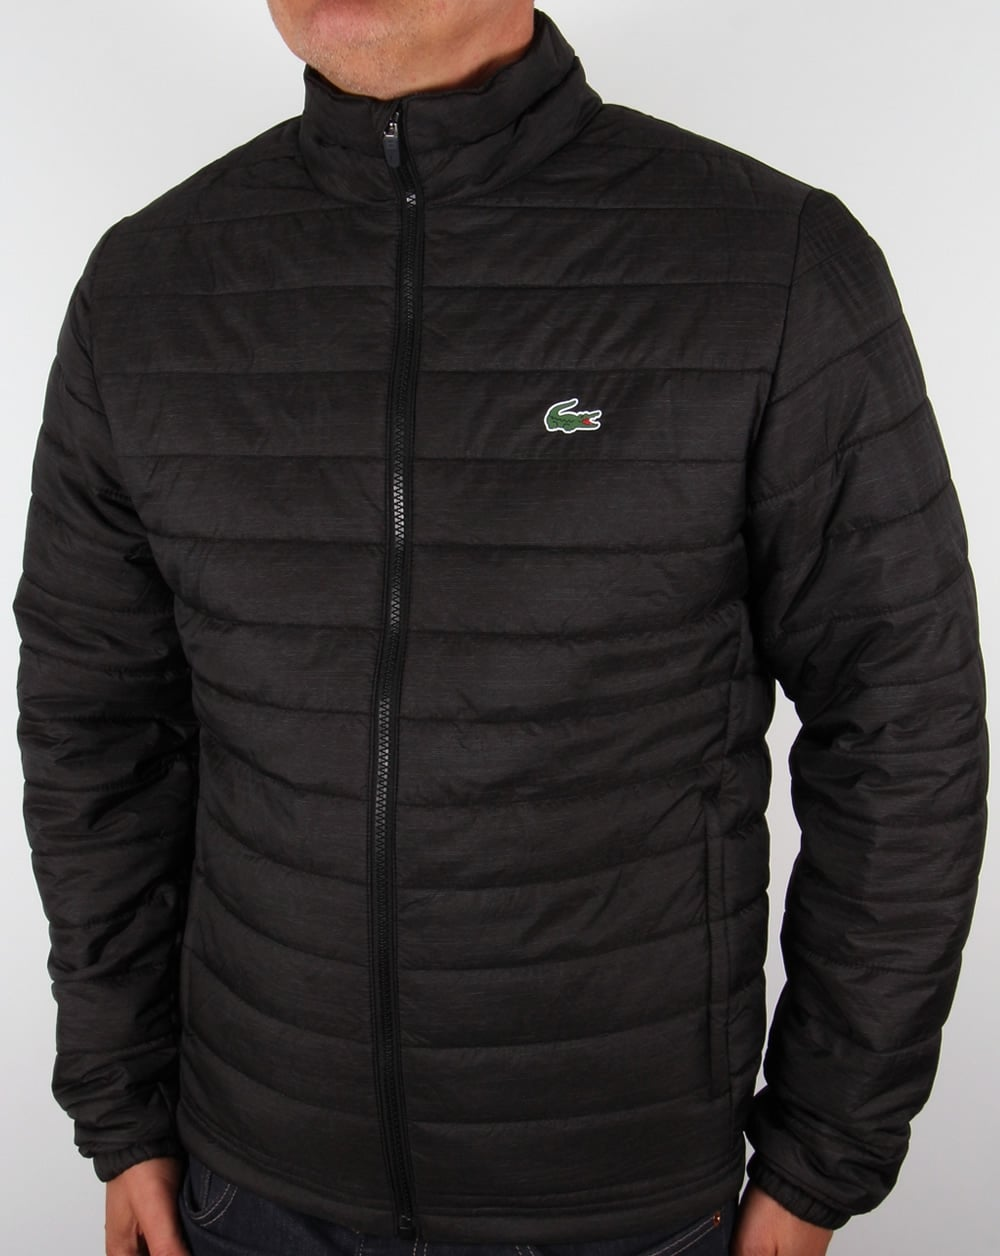 03096679 Lacoste Quilted Jacket Black